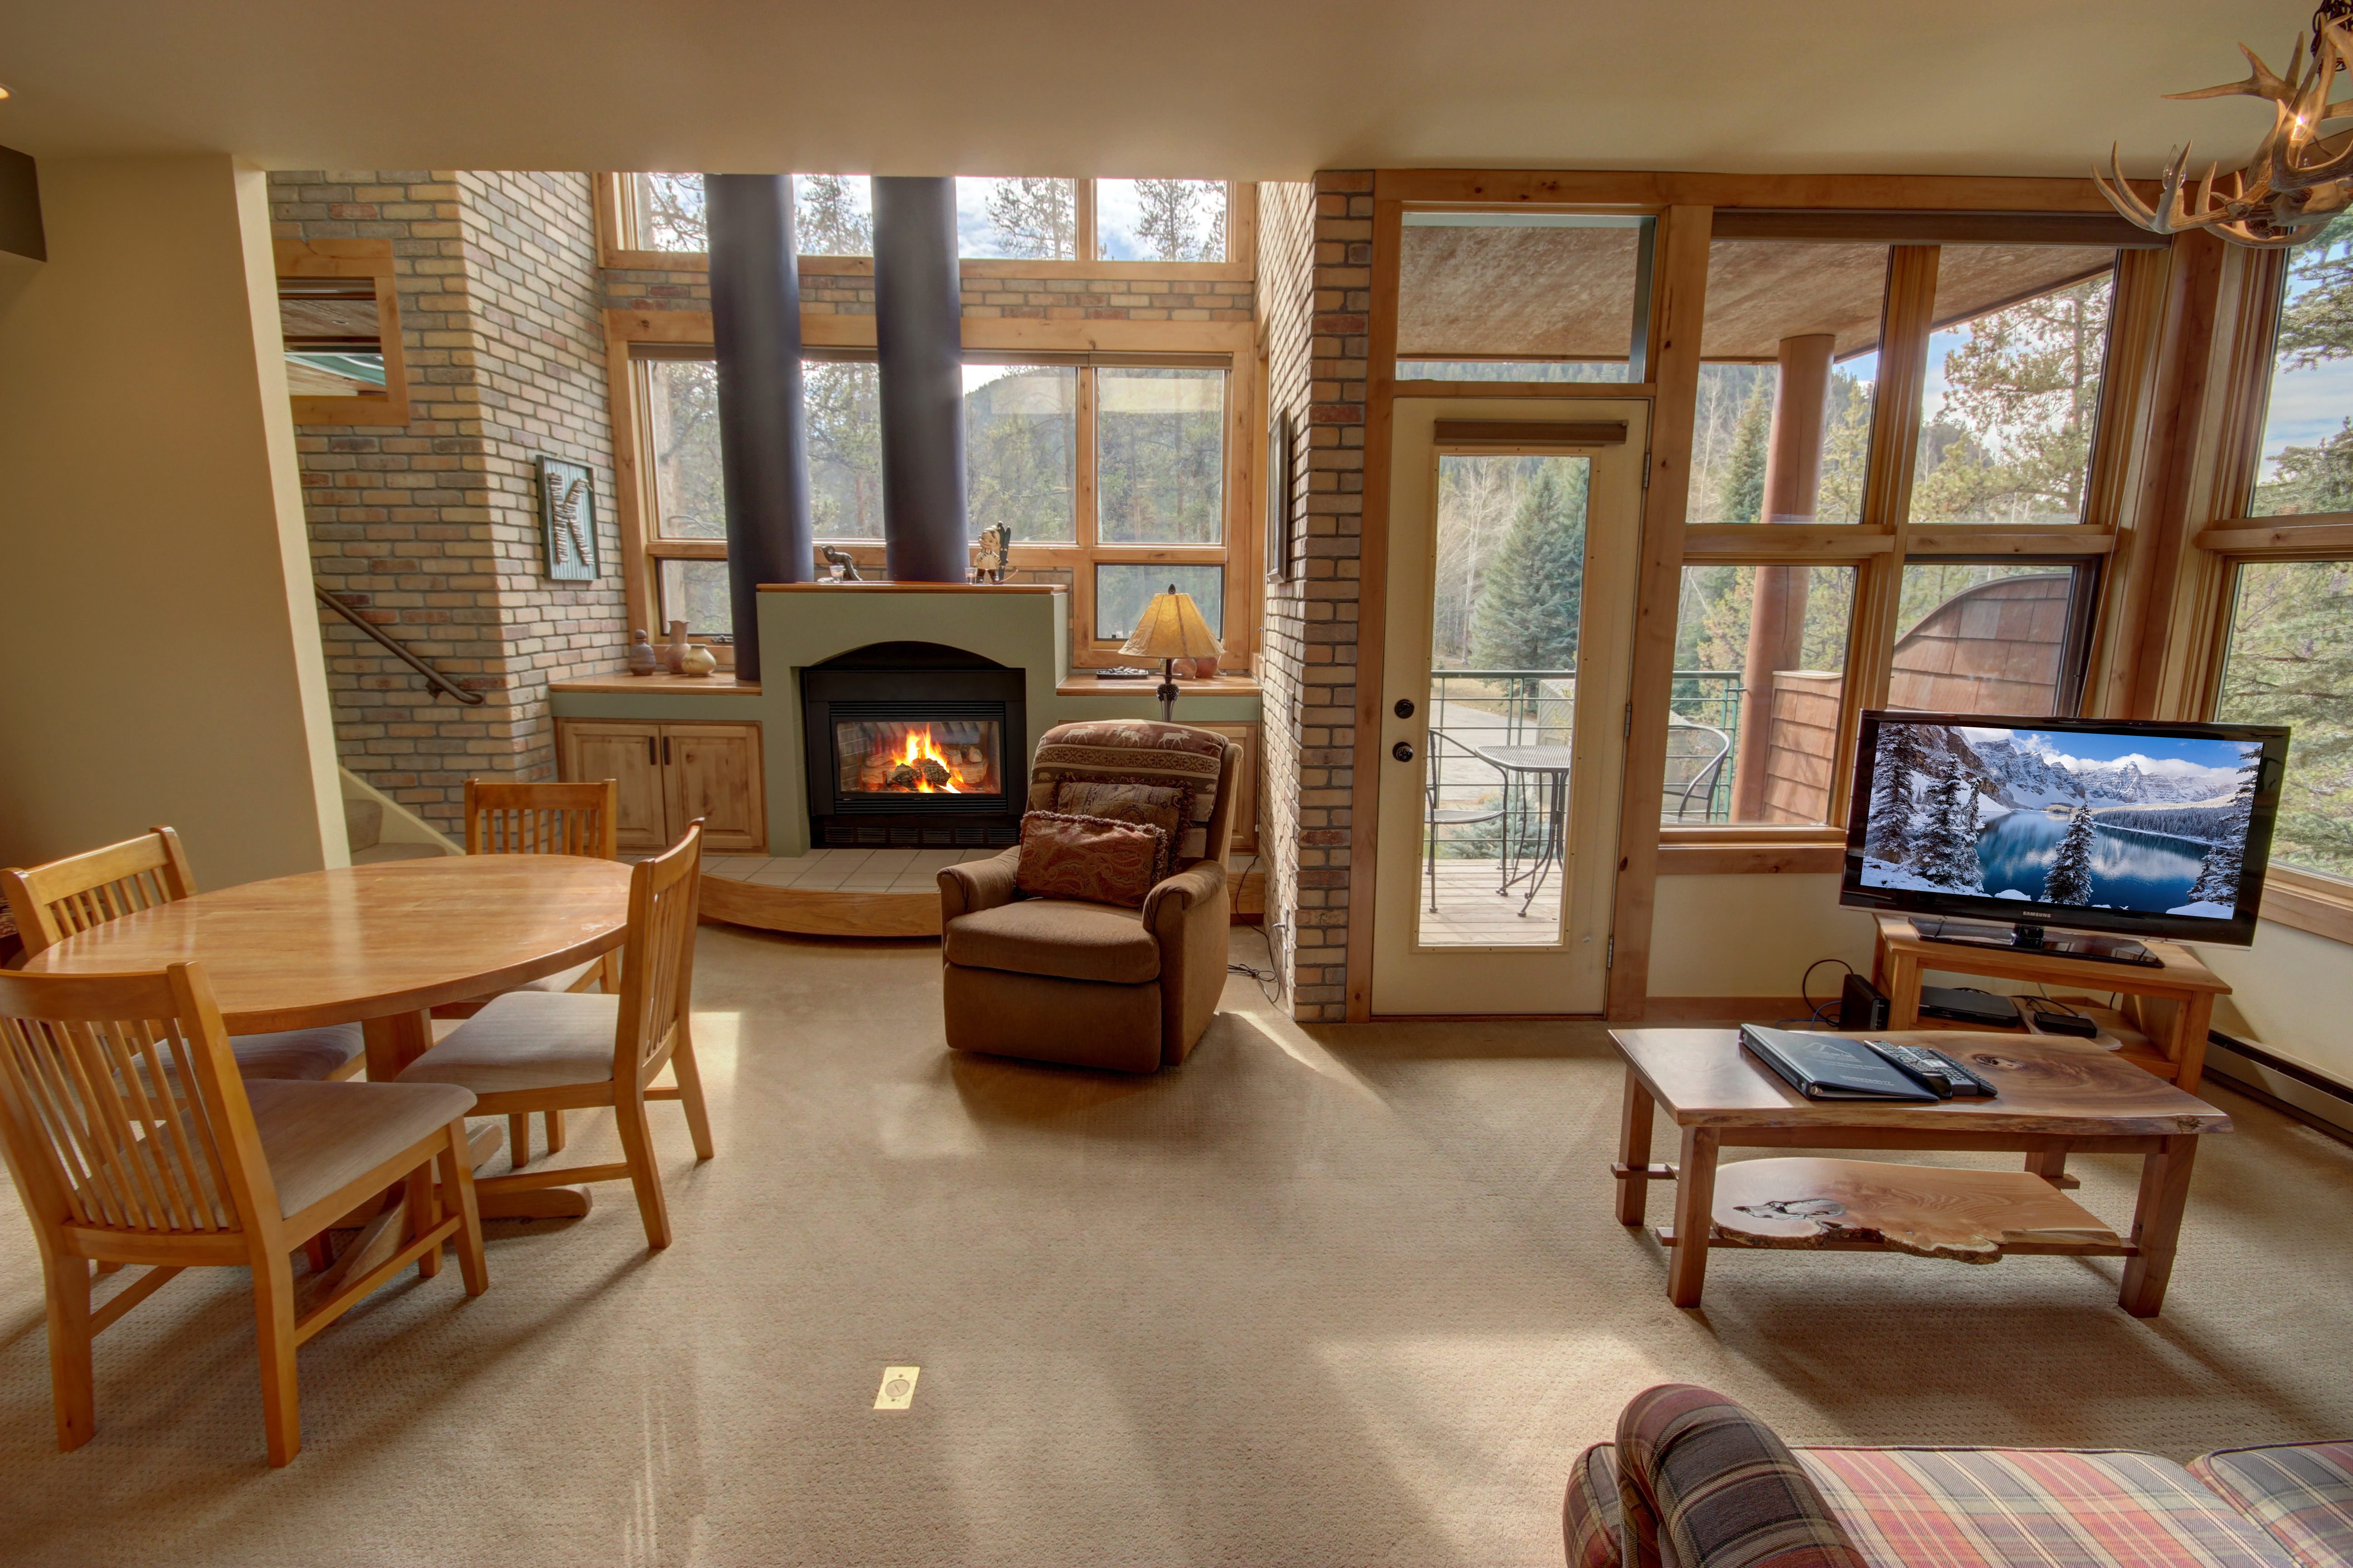 Living room with cozy fireplace and comfy couches